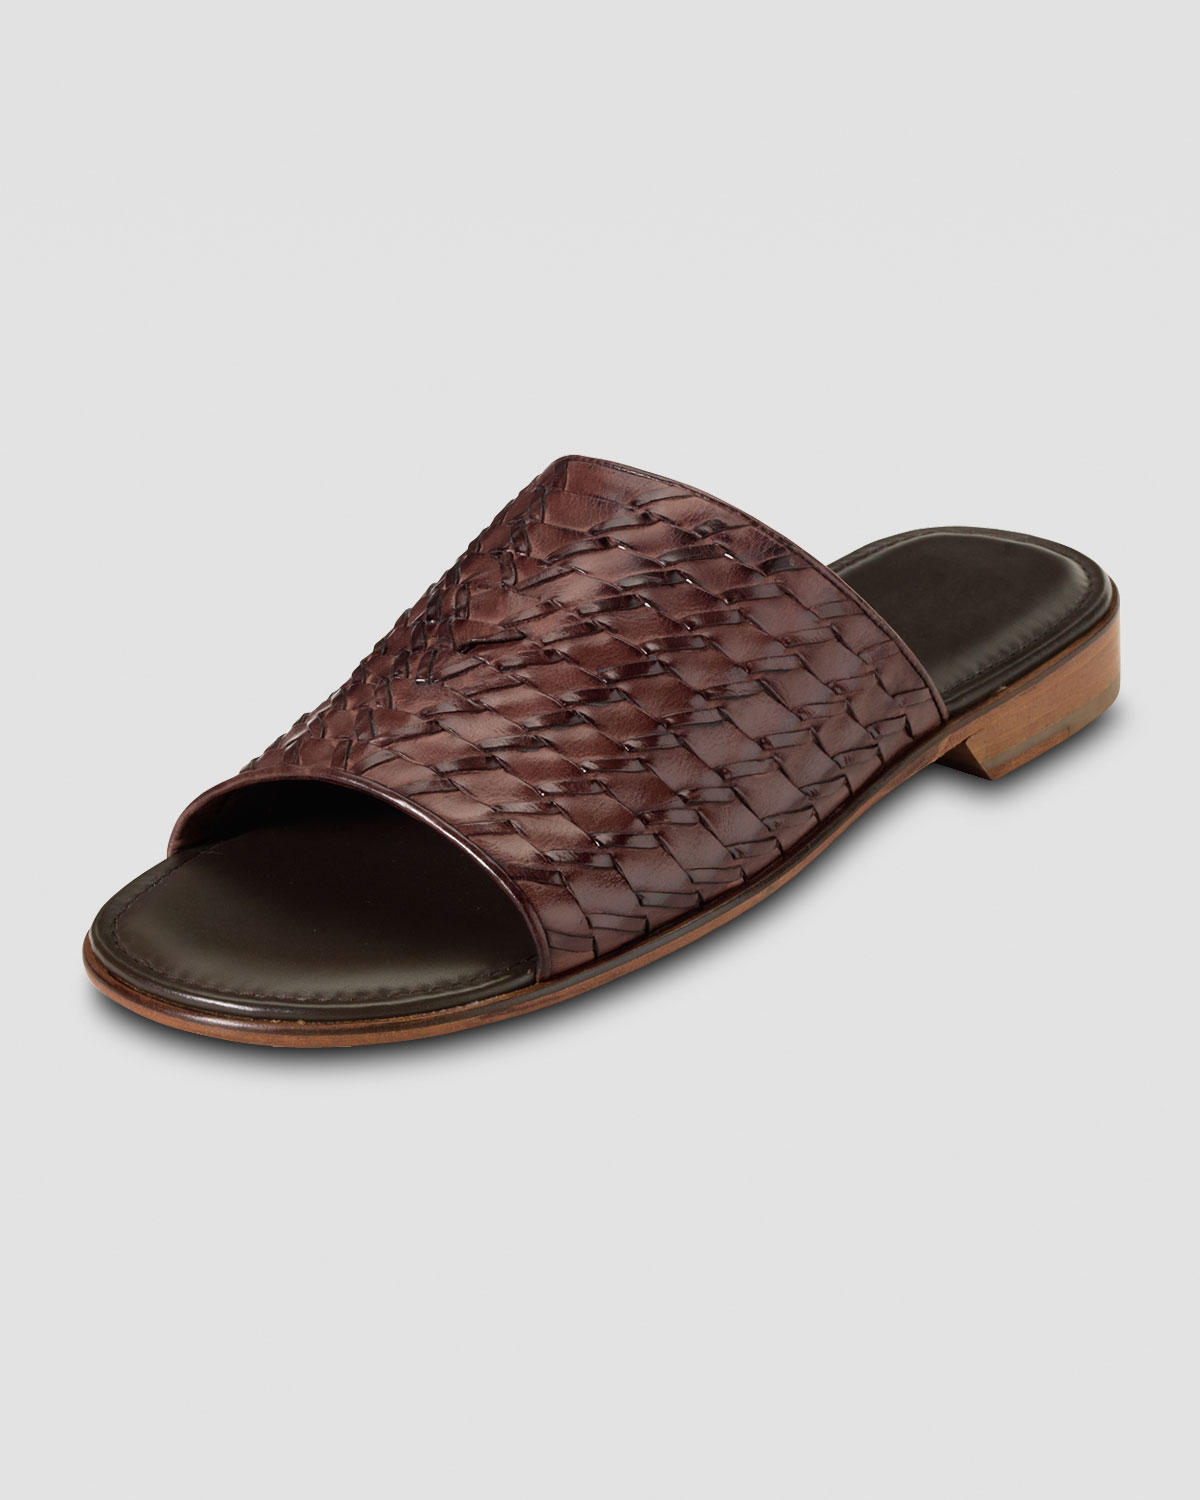 0bbd8feaa90e Cole Haan Air Tremont Woven Slide Sandal in Brown for Men - Lyst